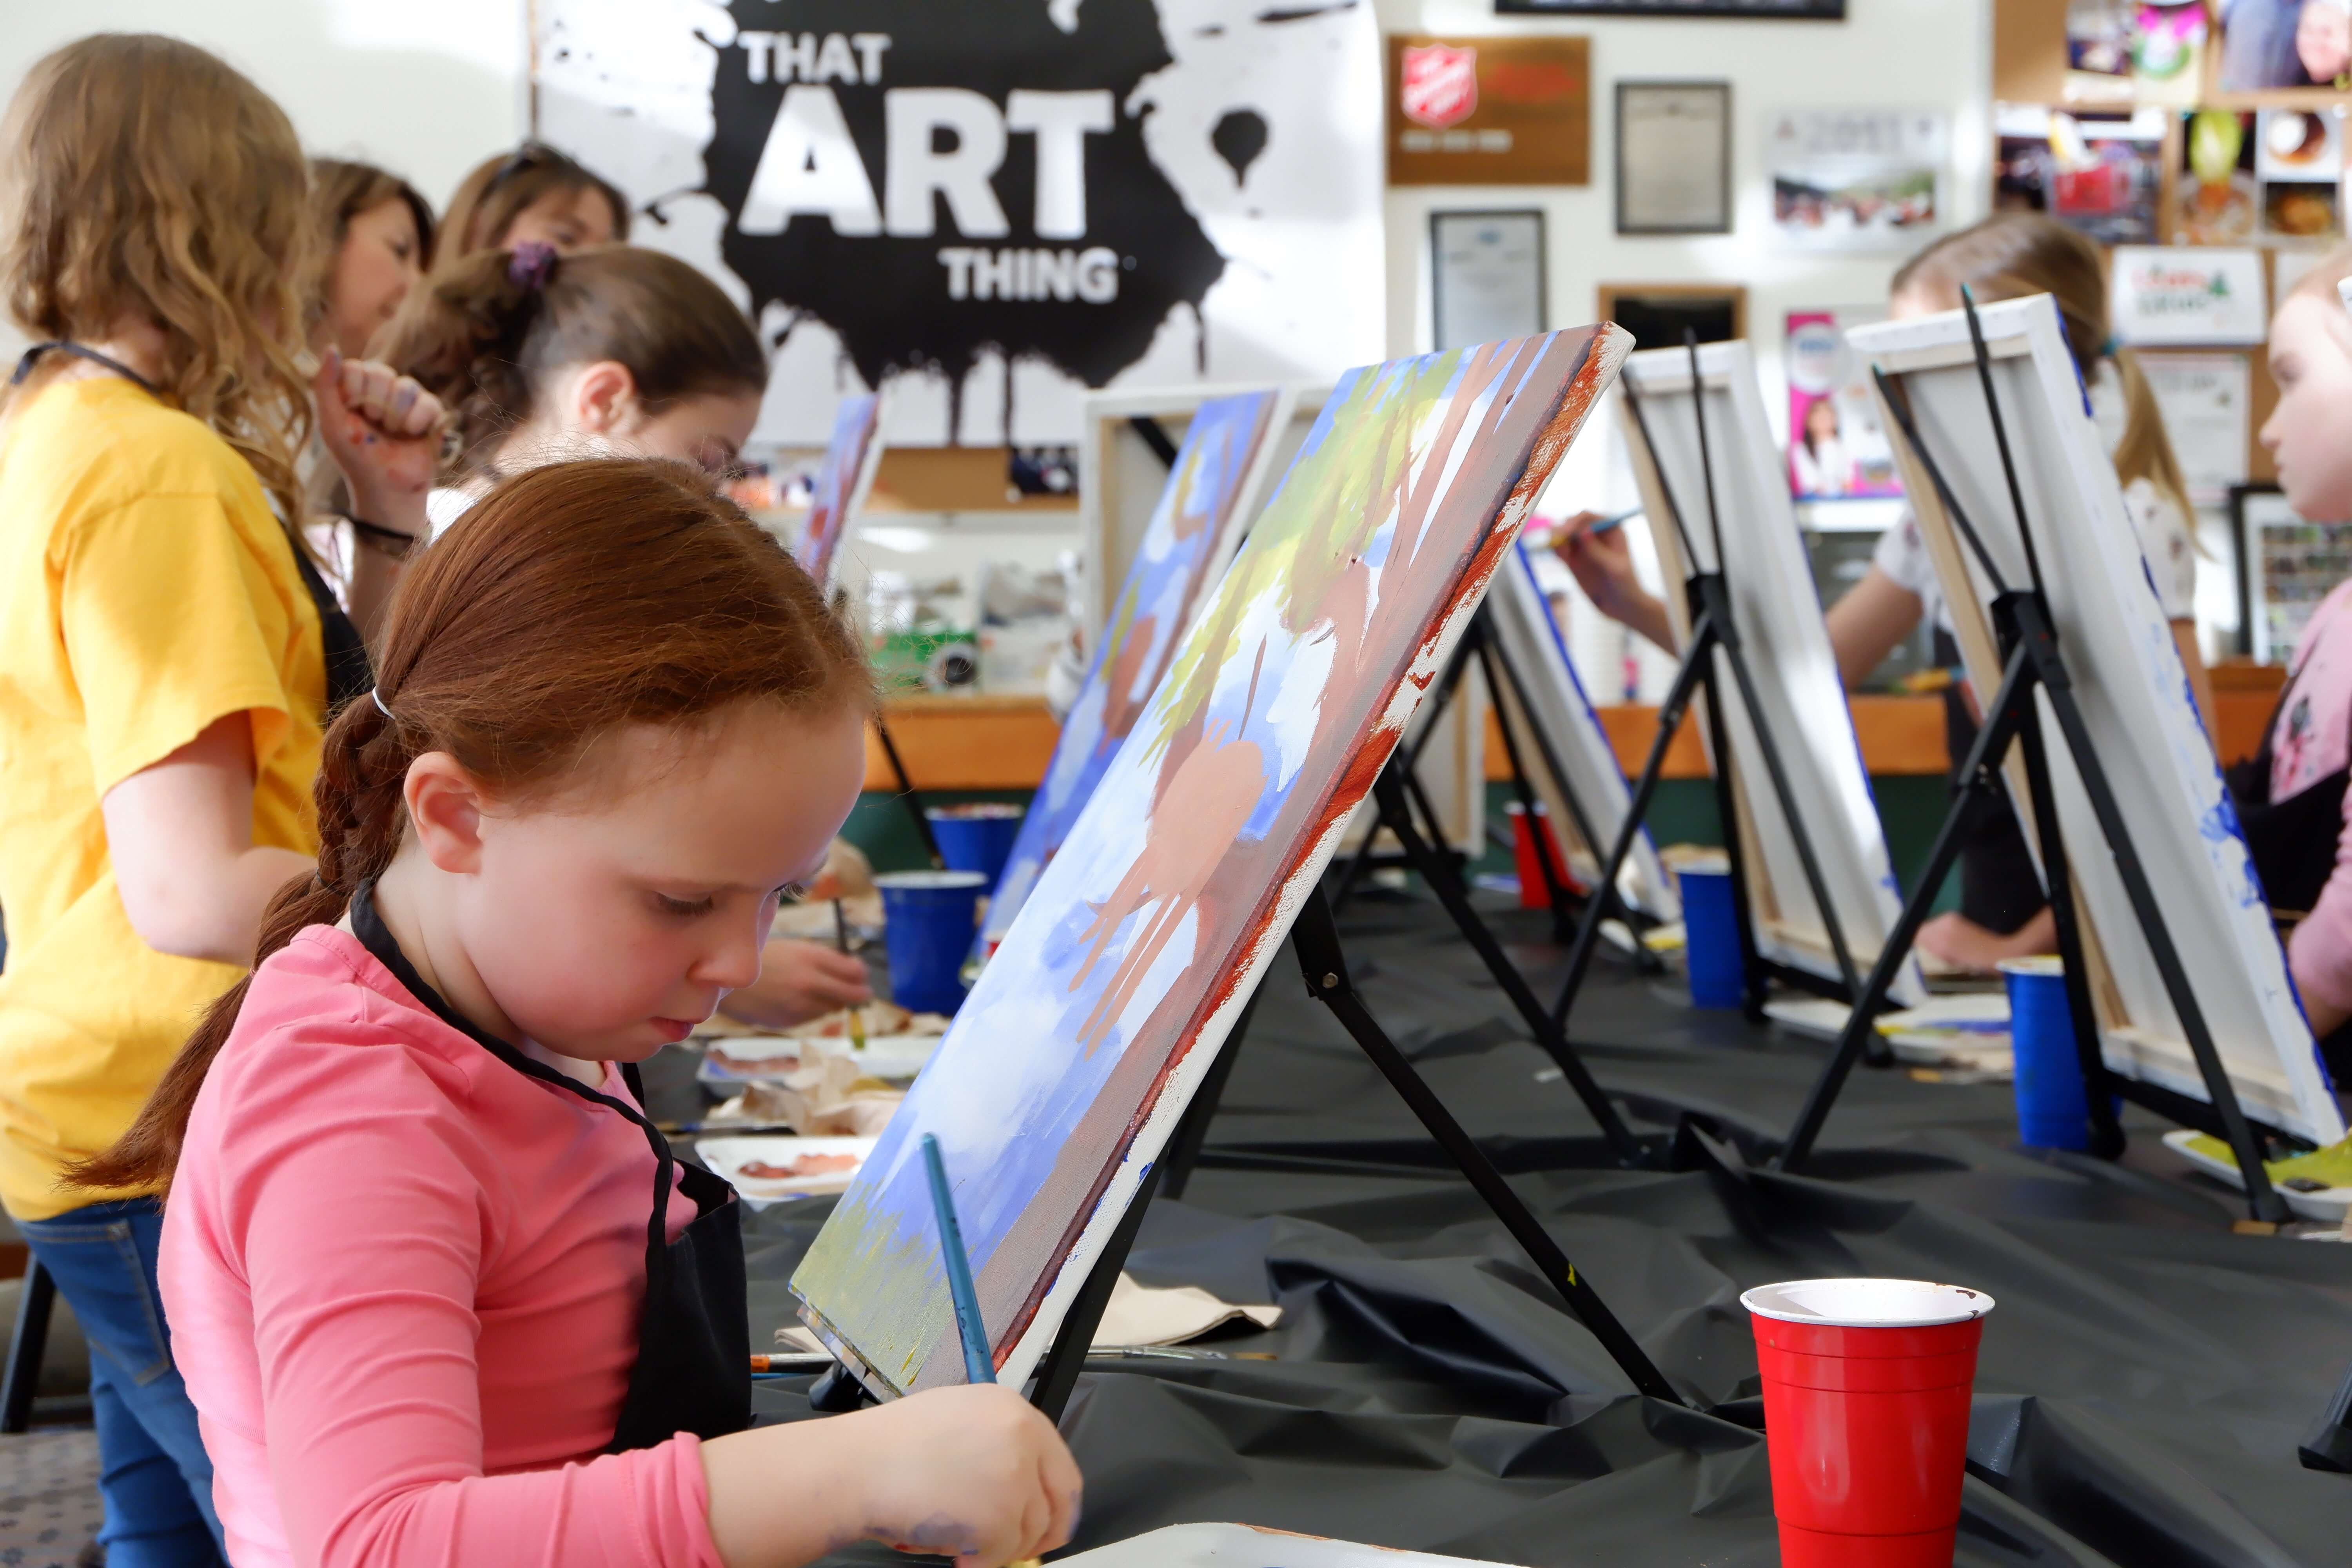 things to do moncton kids family parents fun paint workshop night